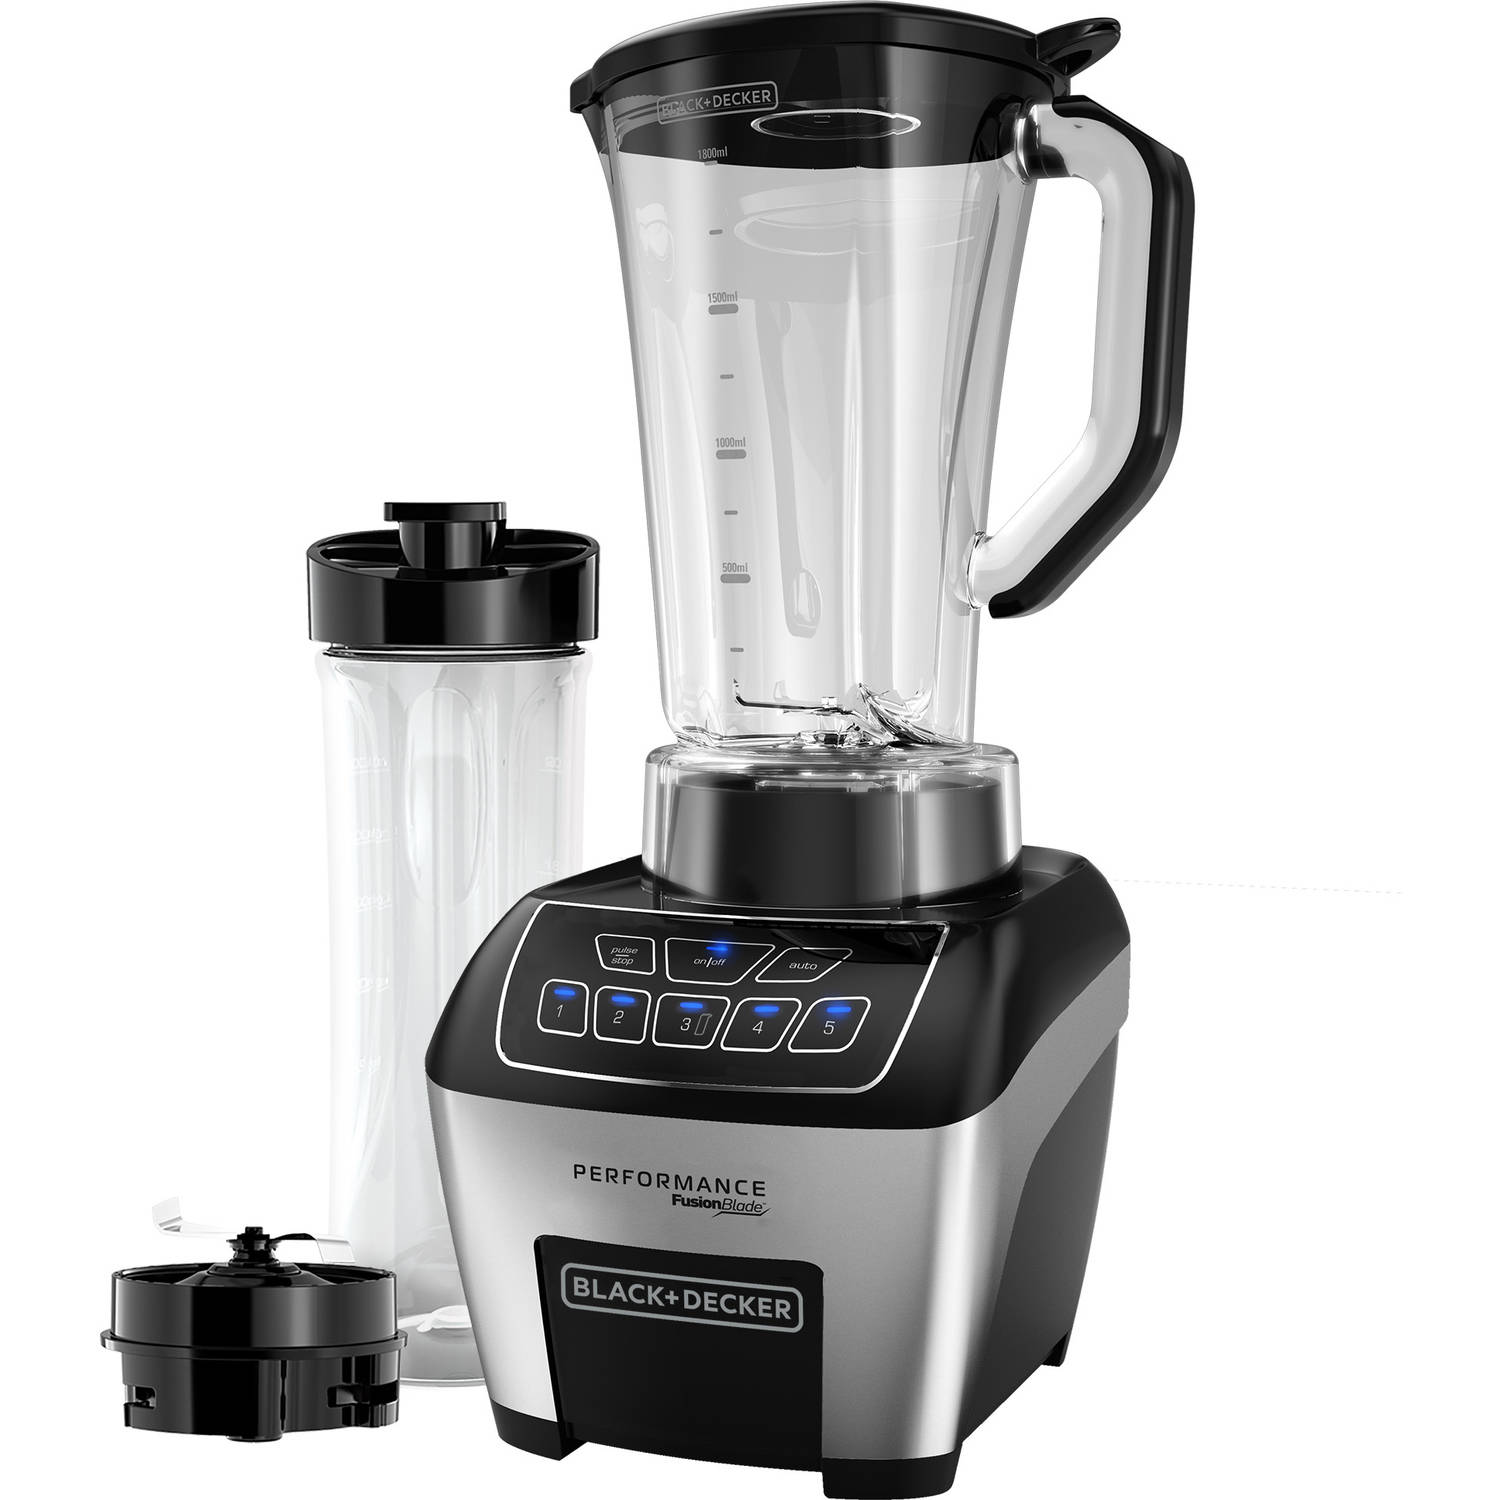 Black+Decker Performance Fusionblade Digital Touch 5 Speed Blender Black (BL6010)